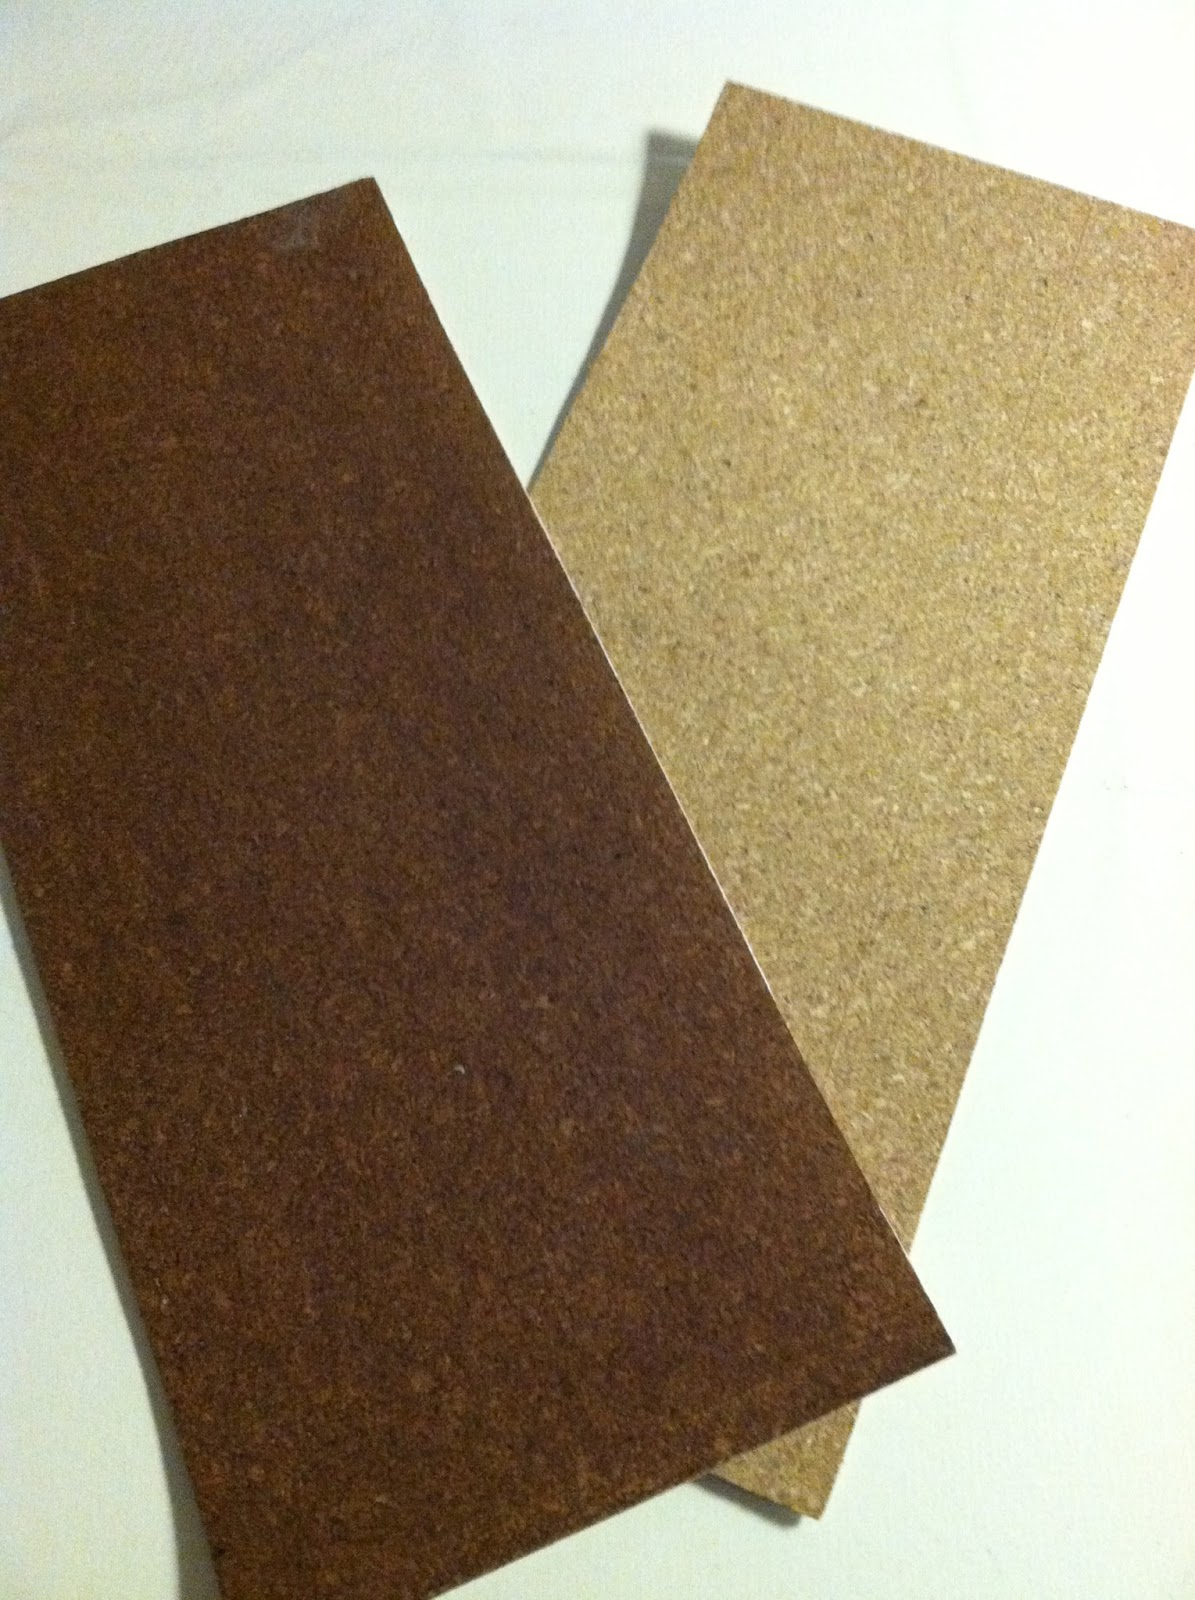 Sandpaper Sheets For Drawing 2 Sheets of Cork i am Using